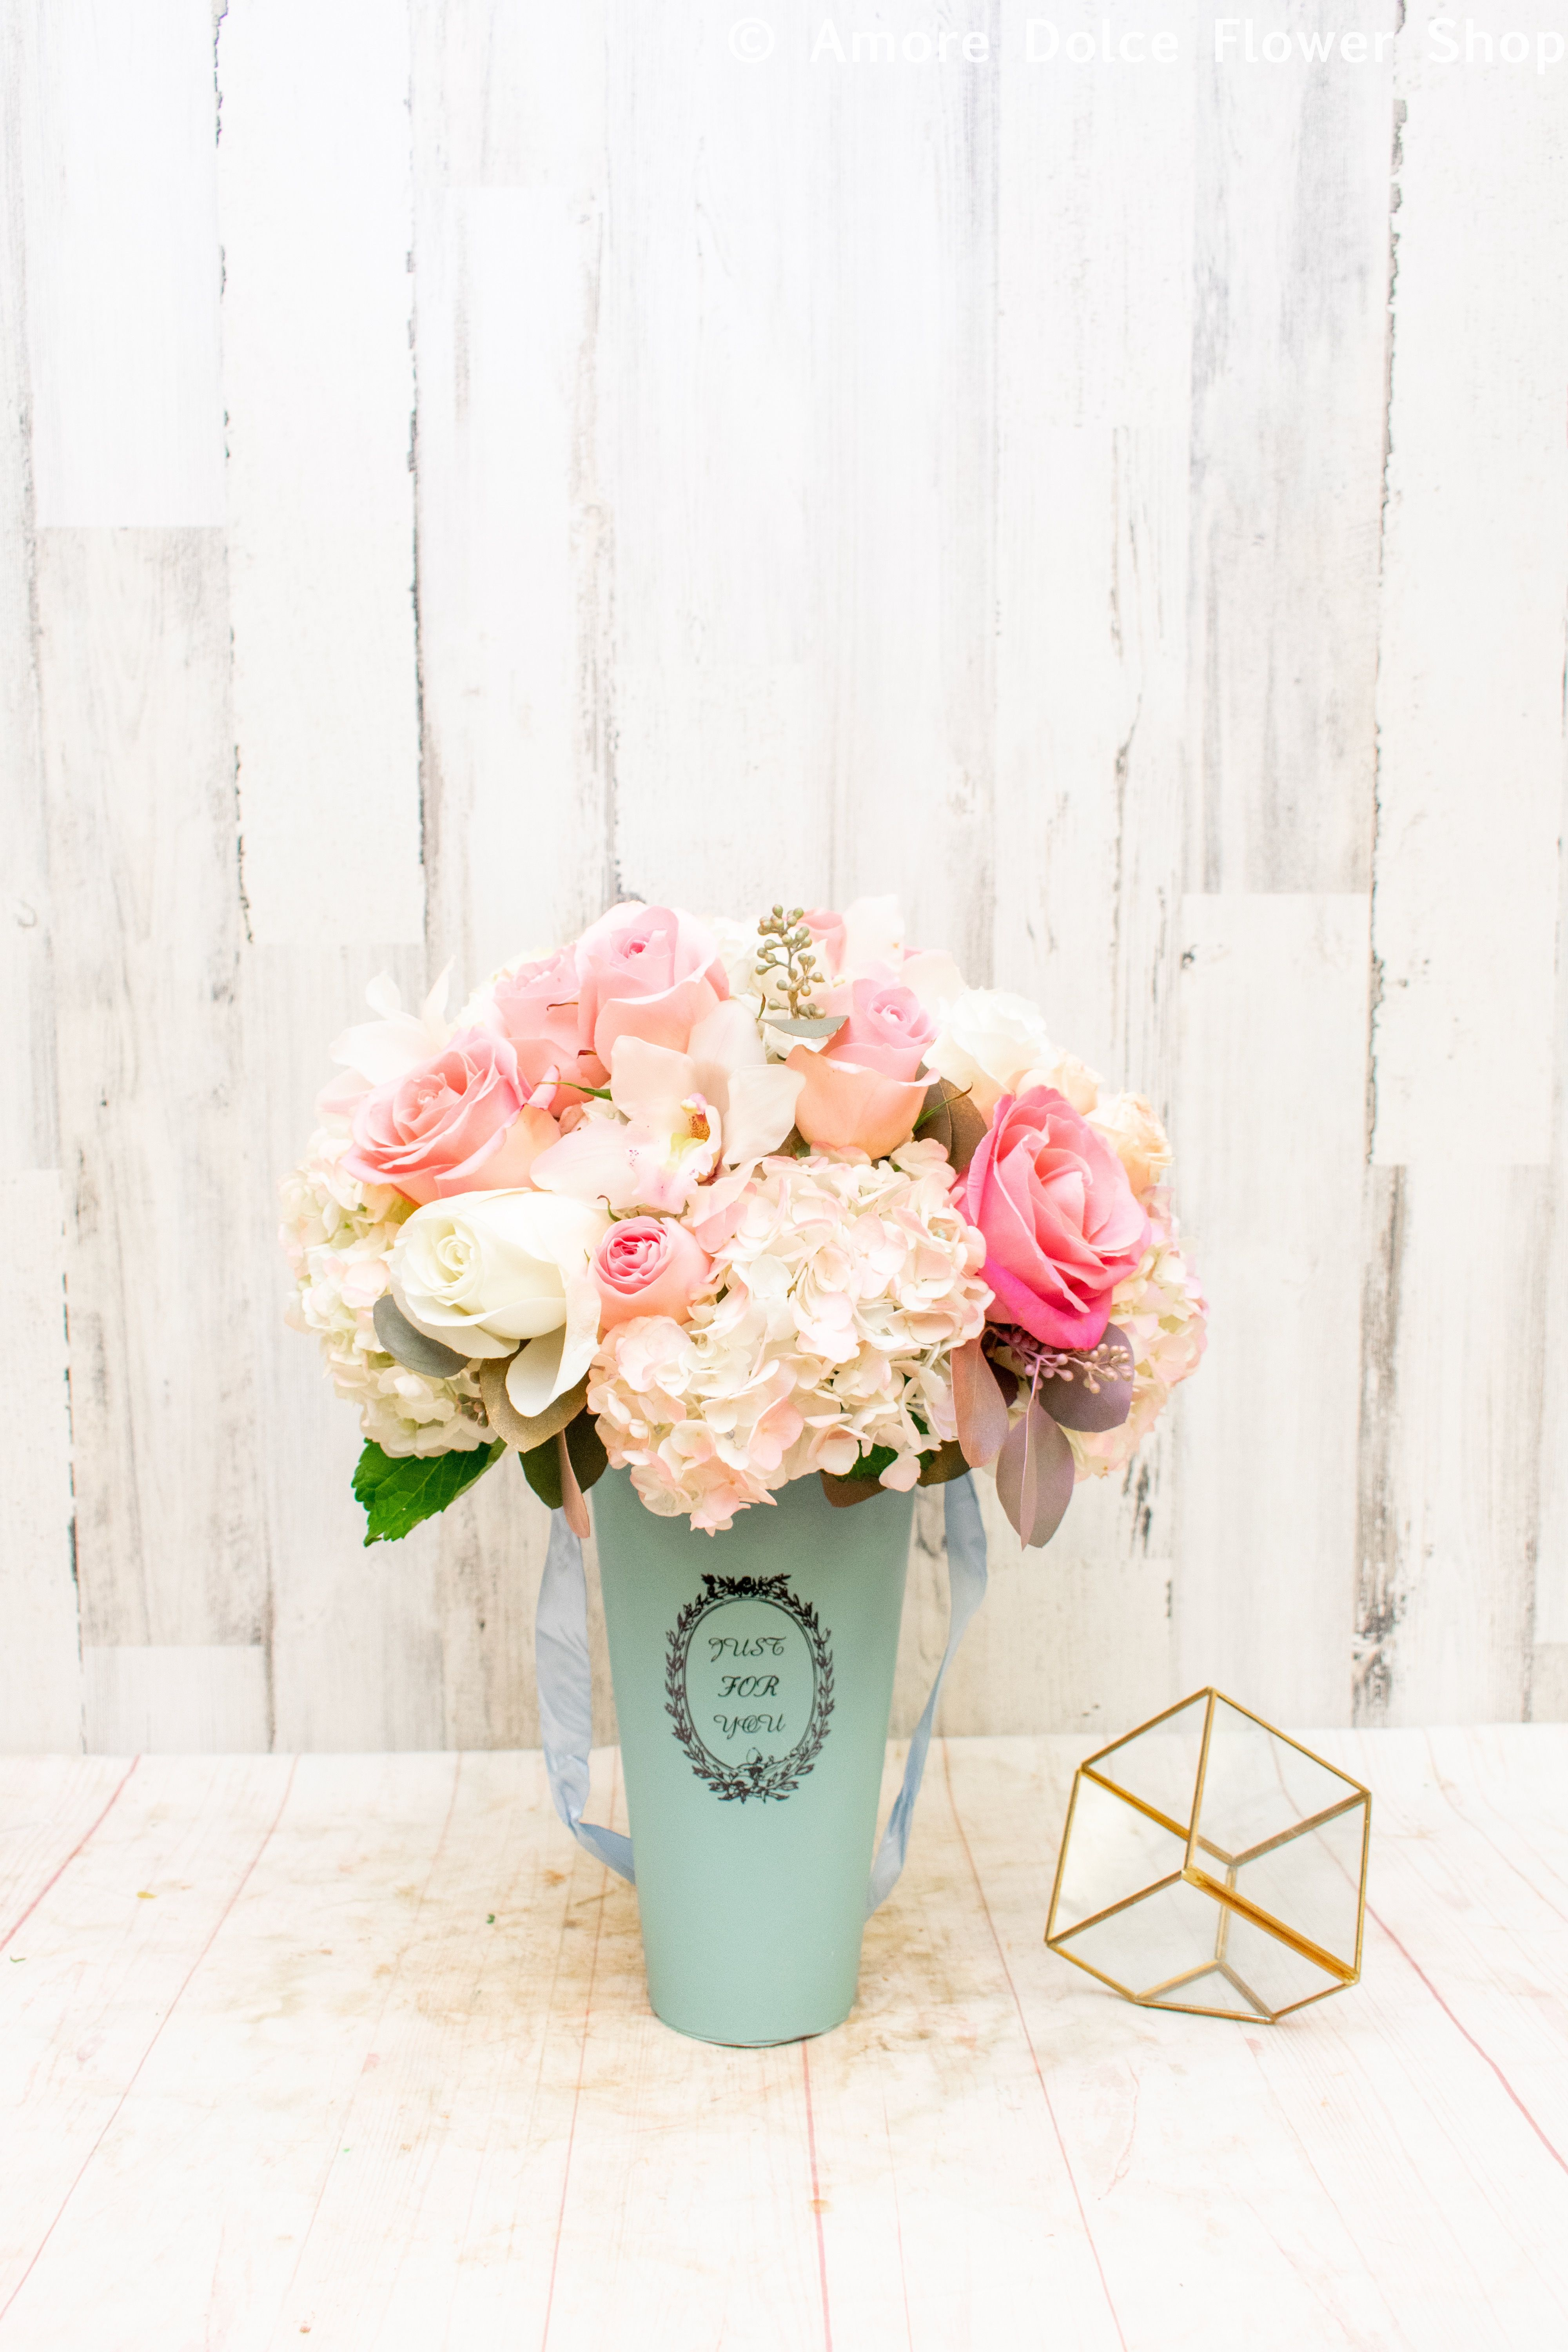 Montebello Florist Flower Delivery by Amore dolce